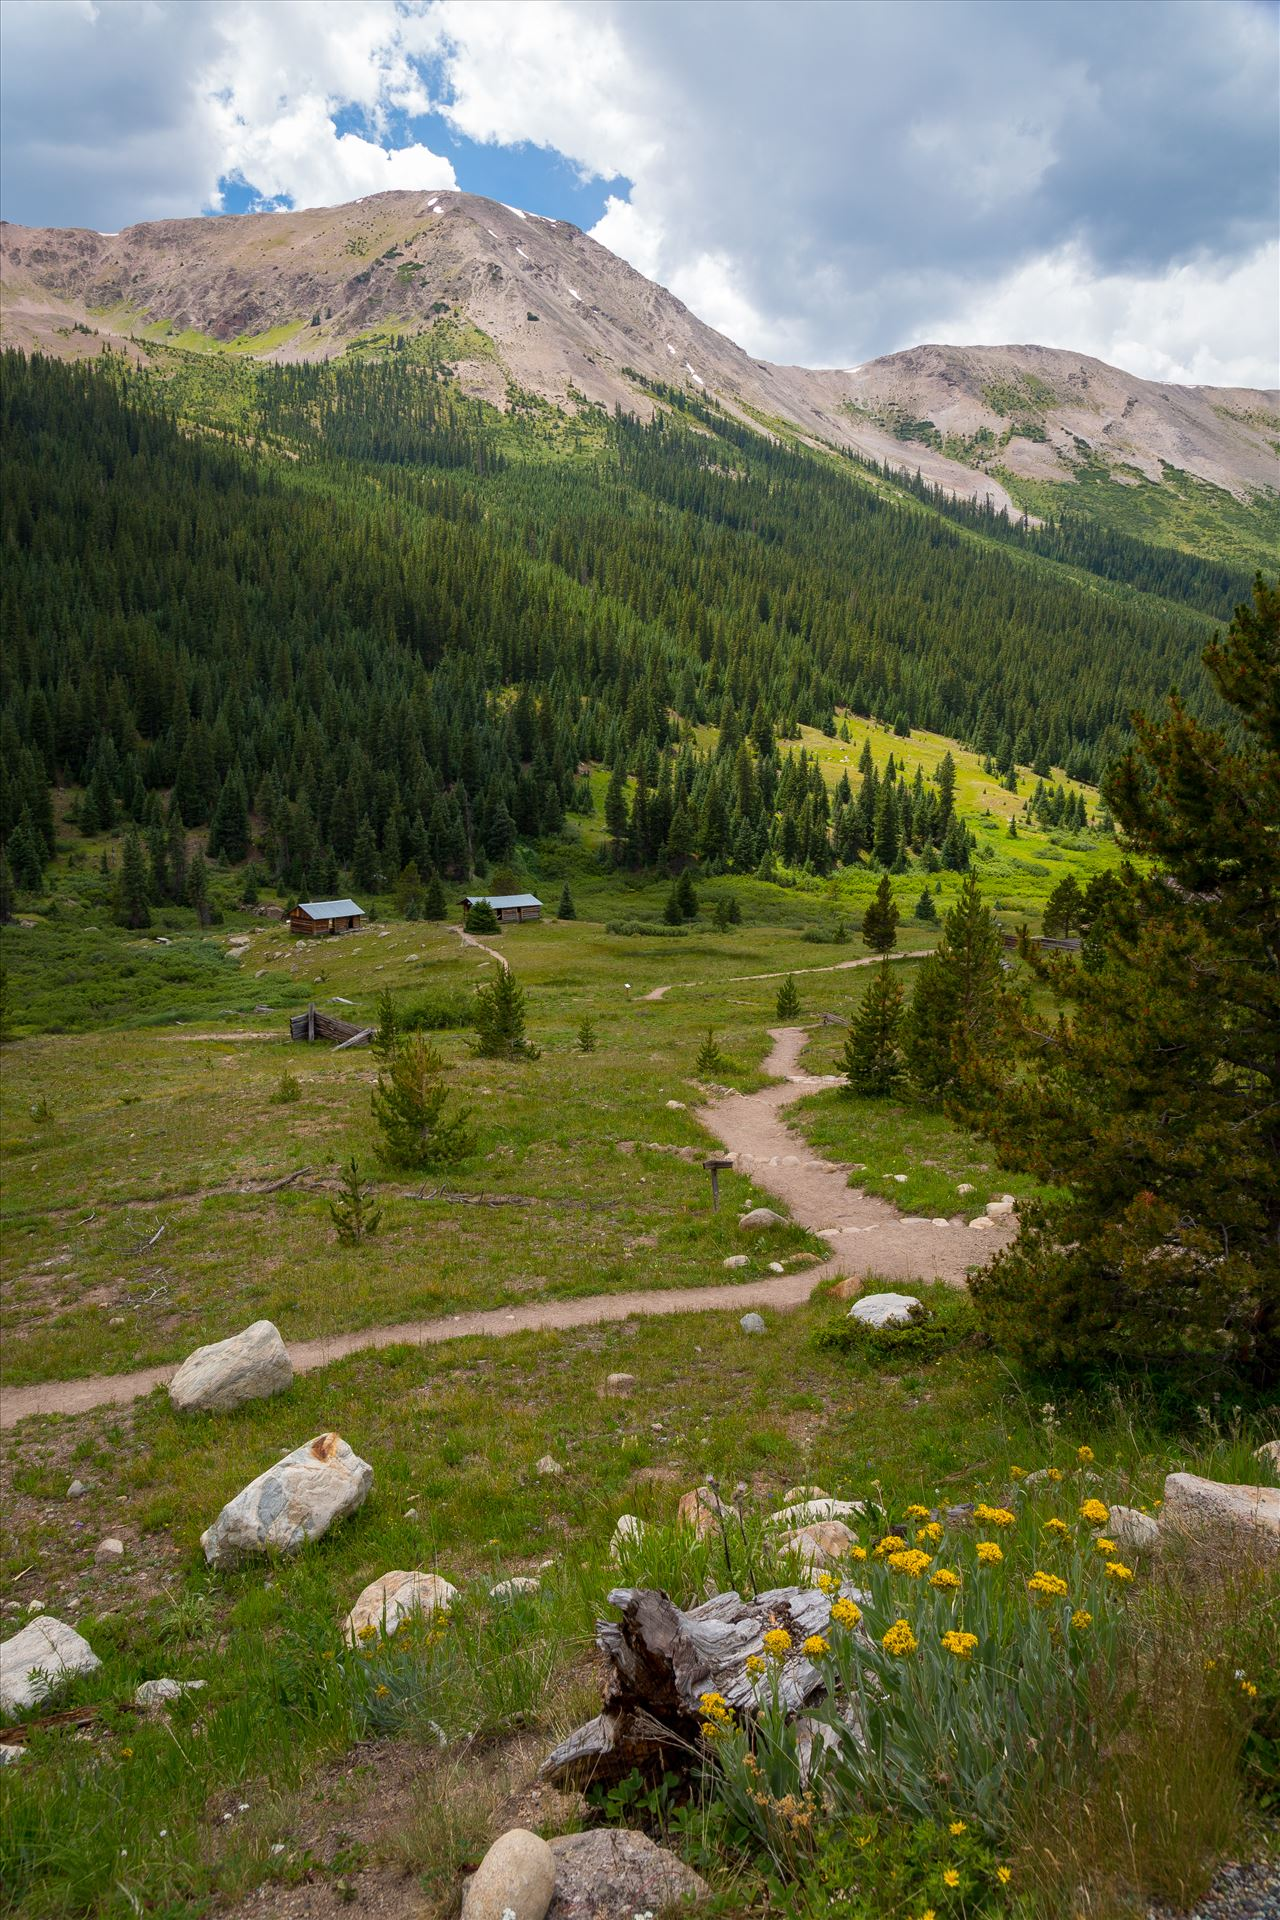 Independence, Colorado - A Real Ghost Town - The ghost town of Independence, on Independence Pass, Colorado. Once a thriving community of 1,500, only a few structures remain, but is maintained by the National Historical Society. by D Scott Smith